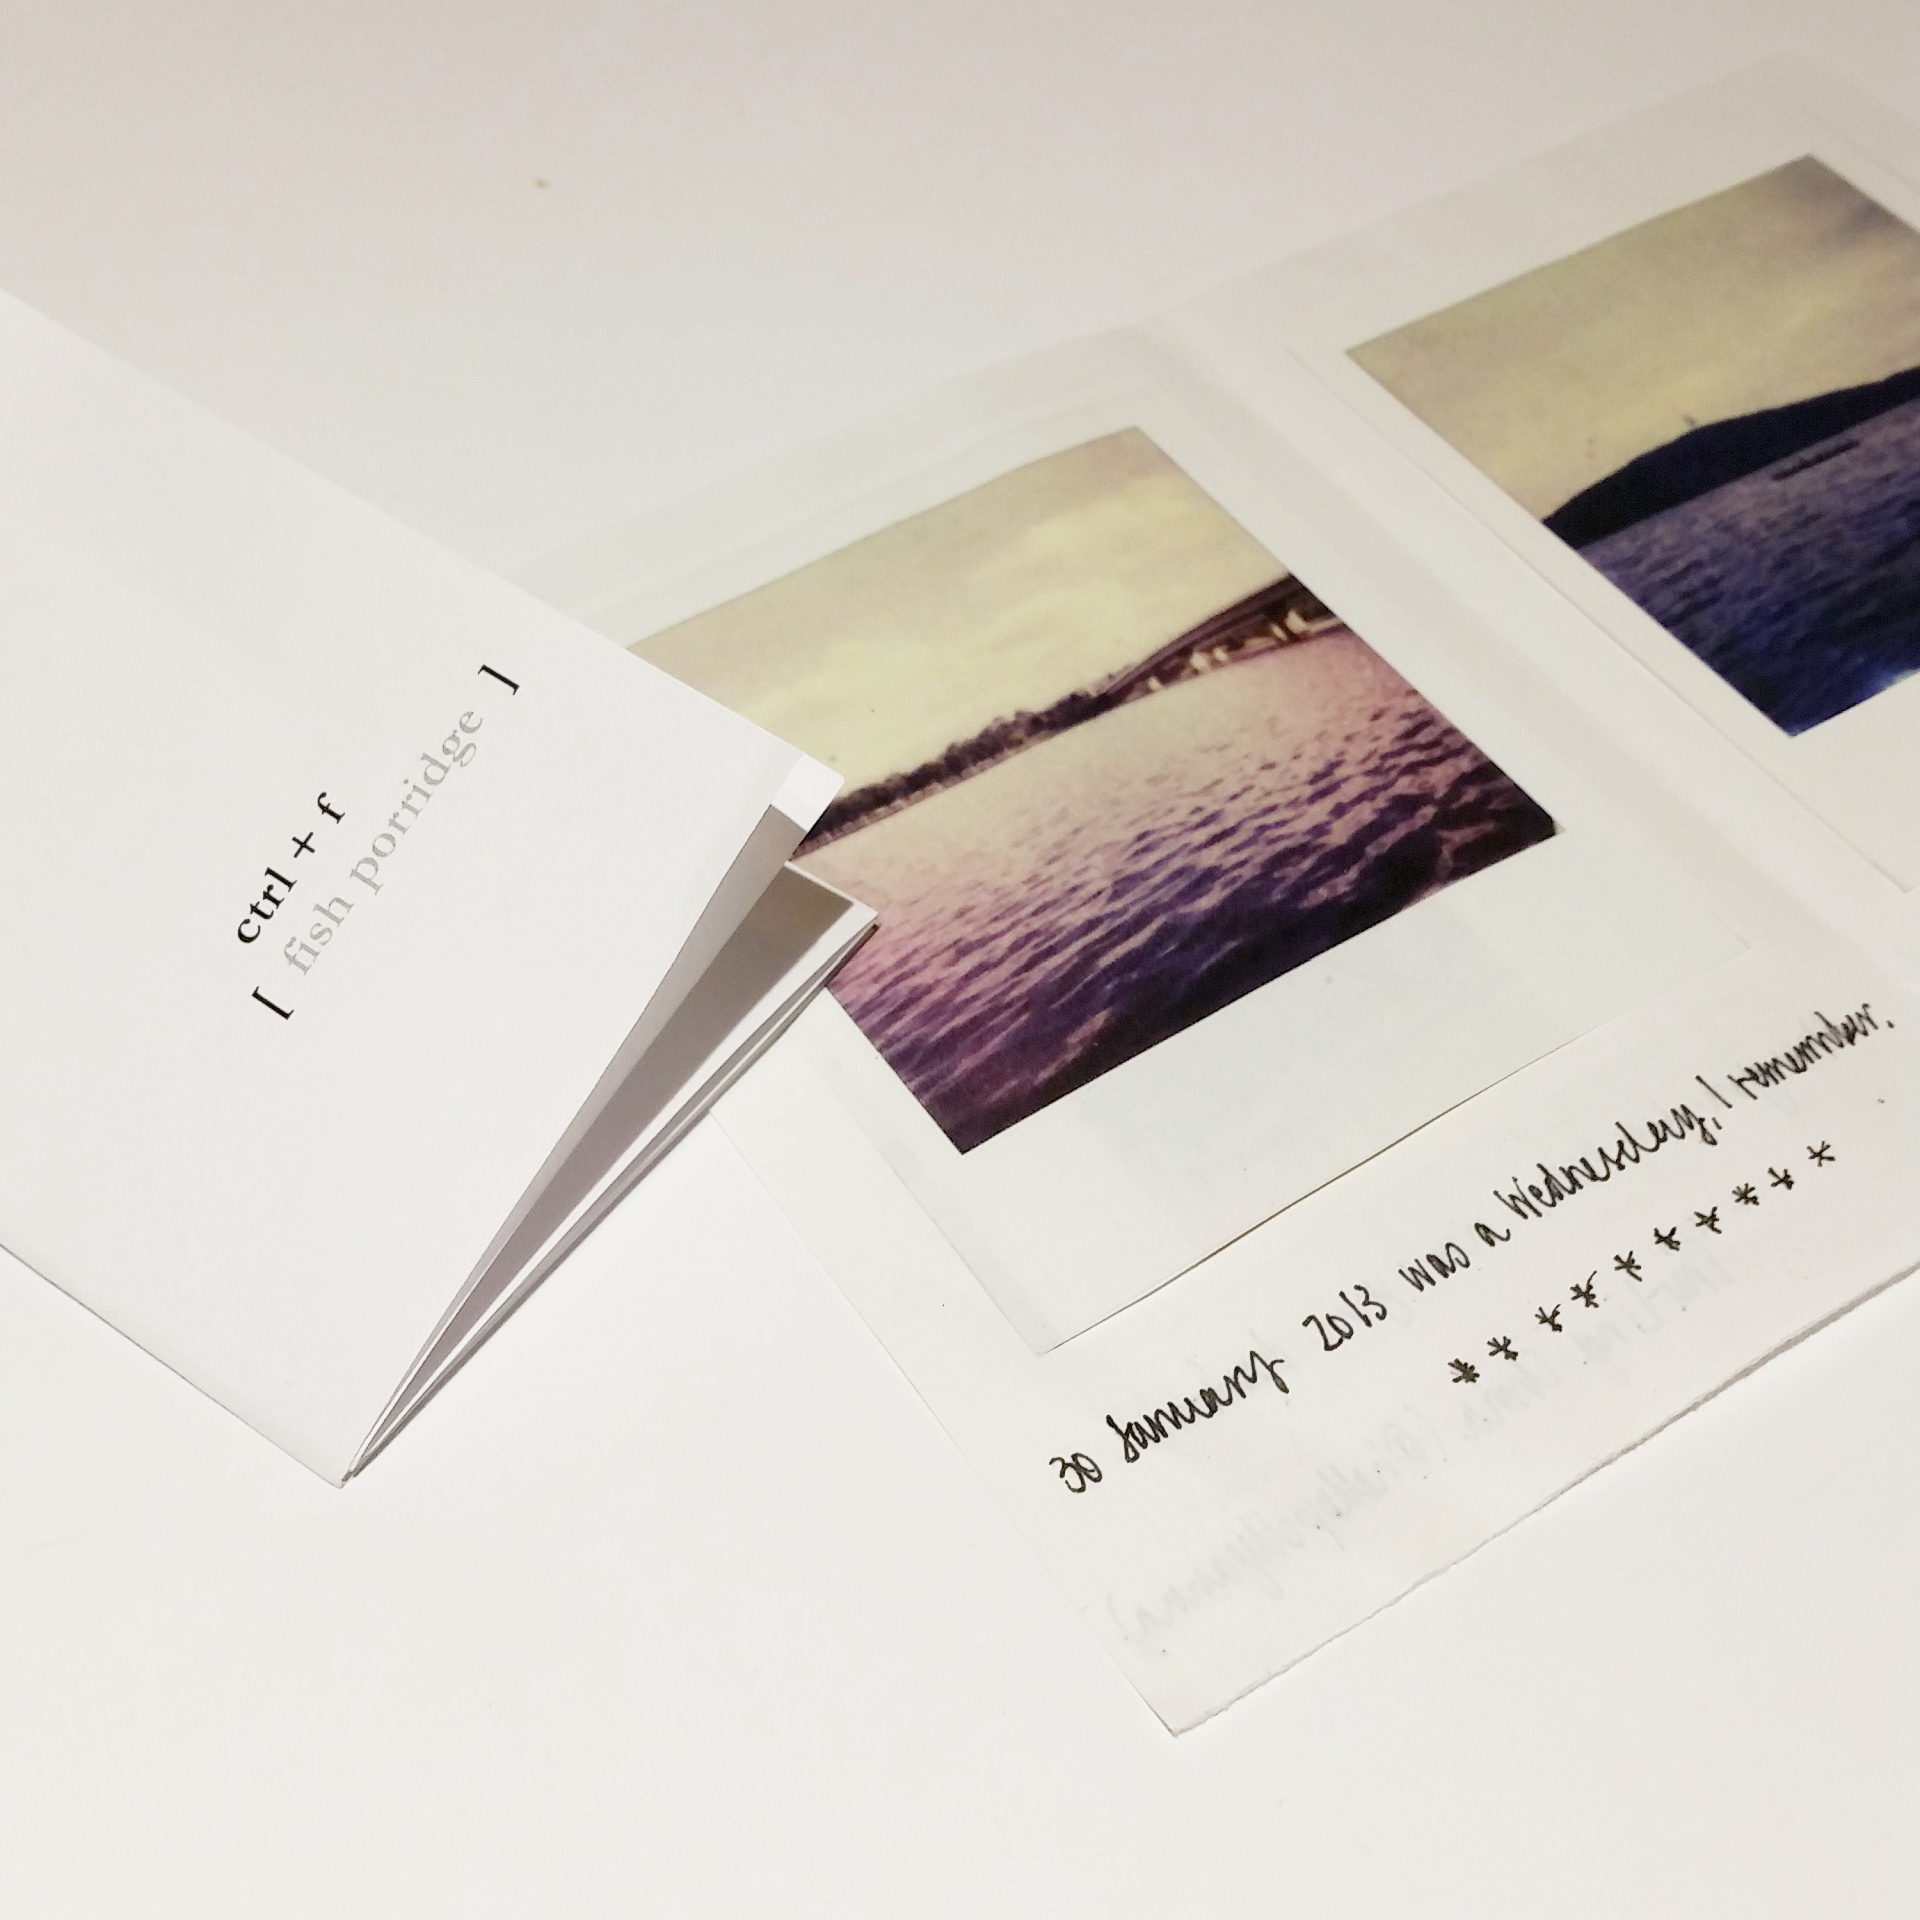 Shu-Ling Chua  (writer) &  Zhi Yi Cham  (poet) are Canberra-based. Shu-Ling's zines feature Polaroid photos taken in Canberra / Berlin & words on relationships, fleeting and longer-than-expected. Zhi's zines explore her relationships with place & family / her loss.